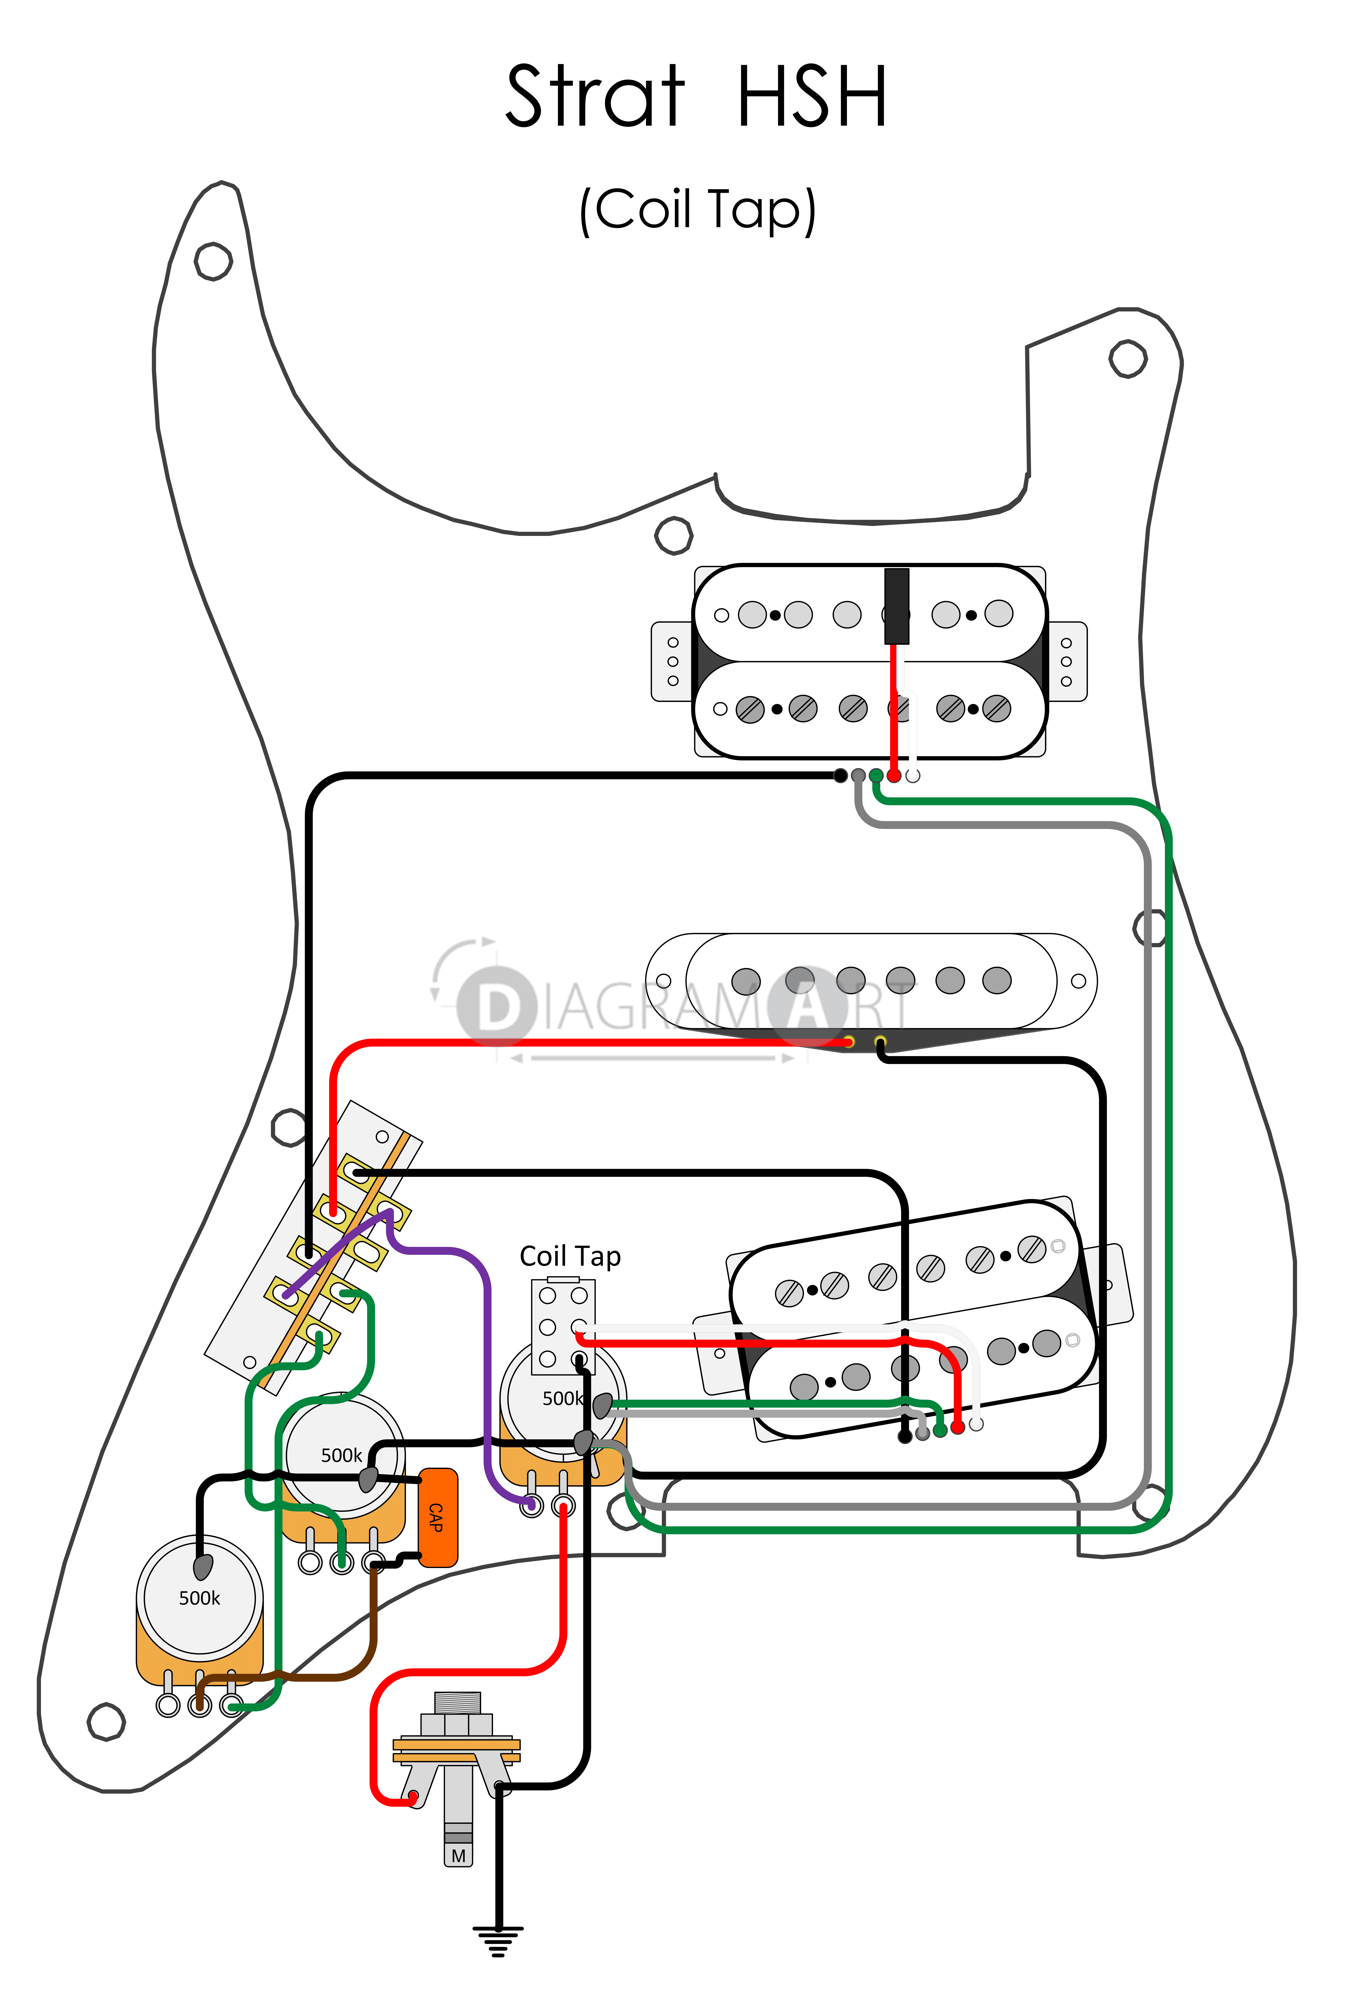 Hsh Strat Wiring Diagram Owner Manual And Books Dimarzio Guitar Diagrams Img Rh 23 Andreas Bolz De Fender